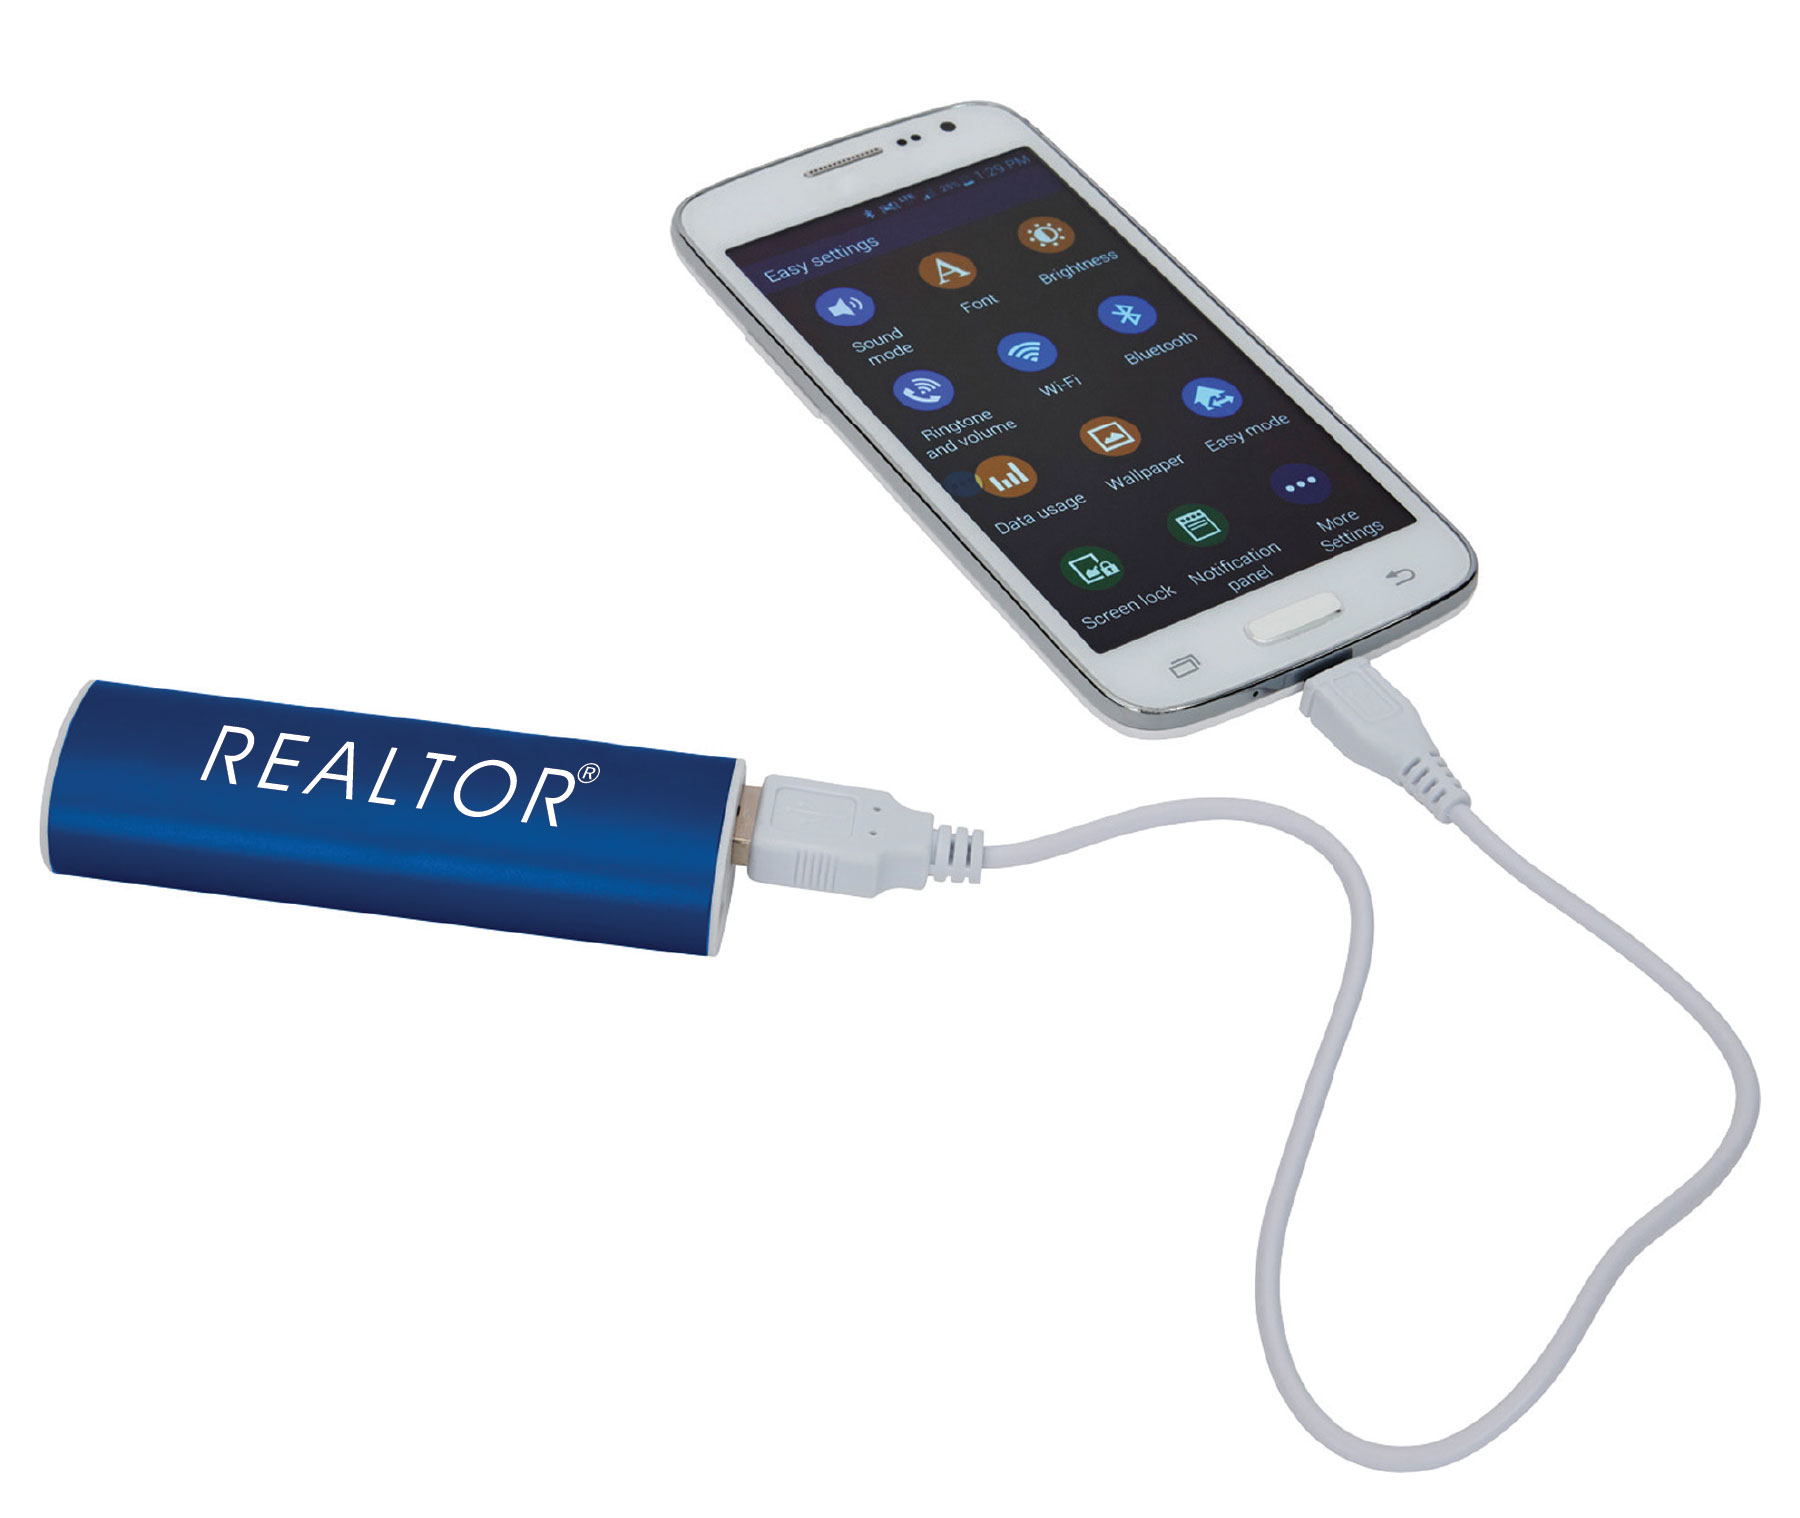 Value Power Bank (Cell Phone Charger) Chargers,Charging,Batteries,Batterys,Phones,Cells,USBS,iPhones,Androids,Sansungs